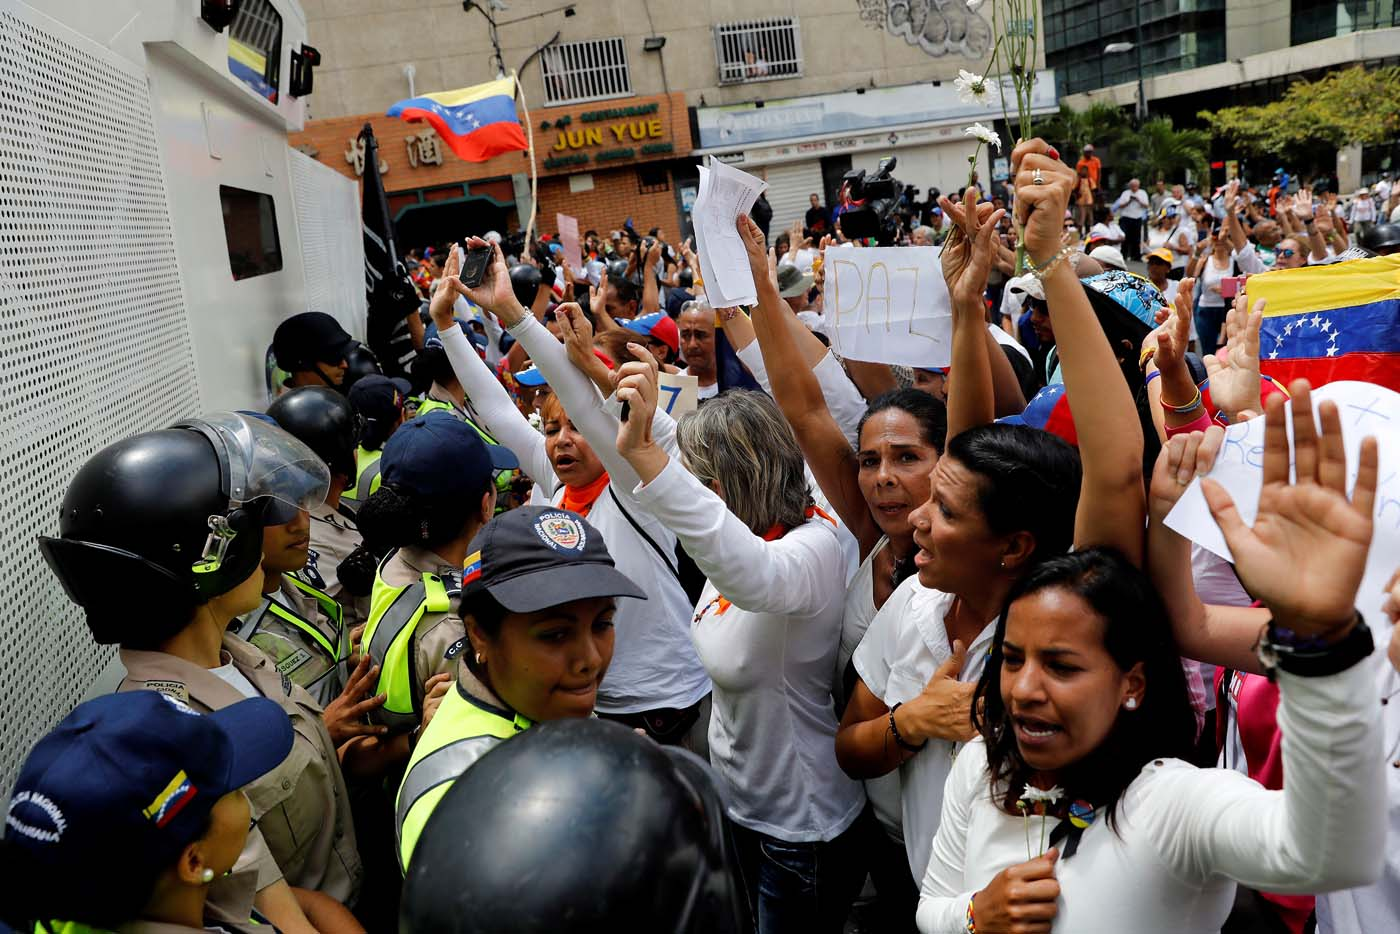 Women lift their hands in front of the police during a women's march to protest against President Nicolas Maduro's government in Caracas, Venezuela May 6, 2017. REUTERS/Carlos Garcia Rawlins